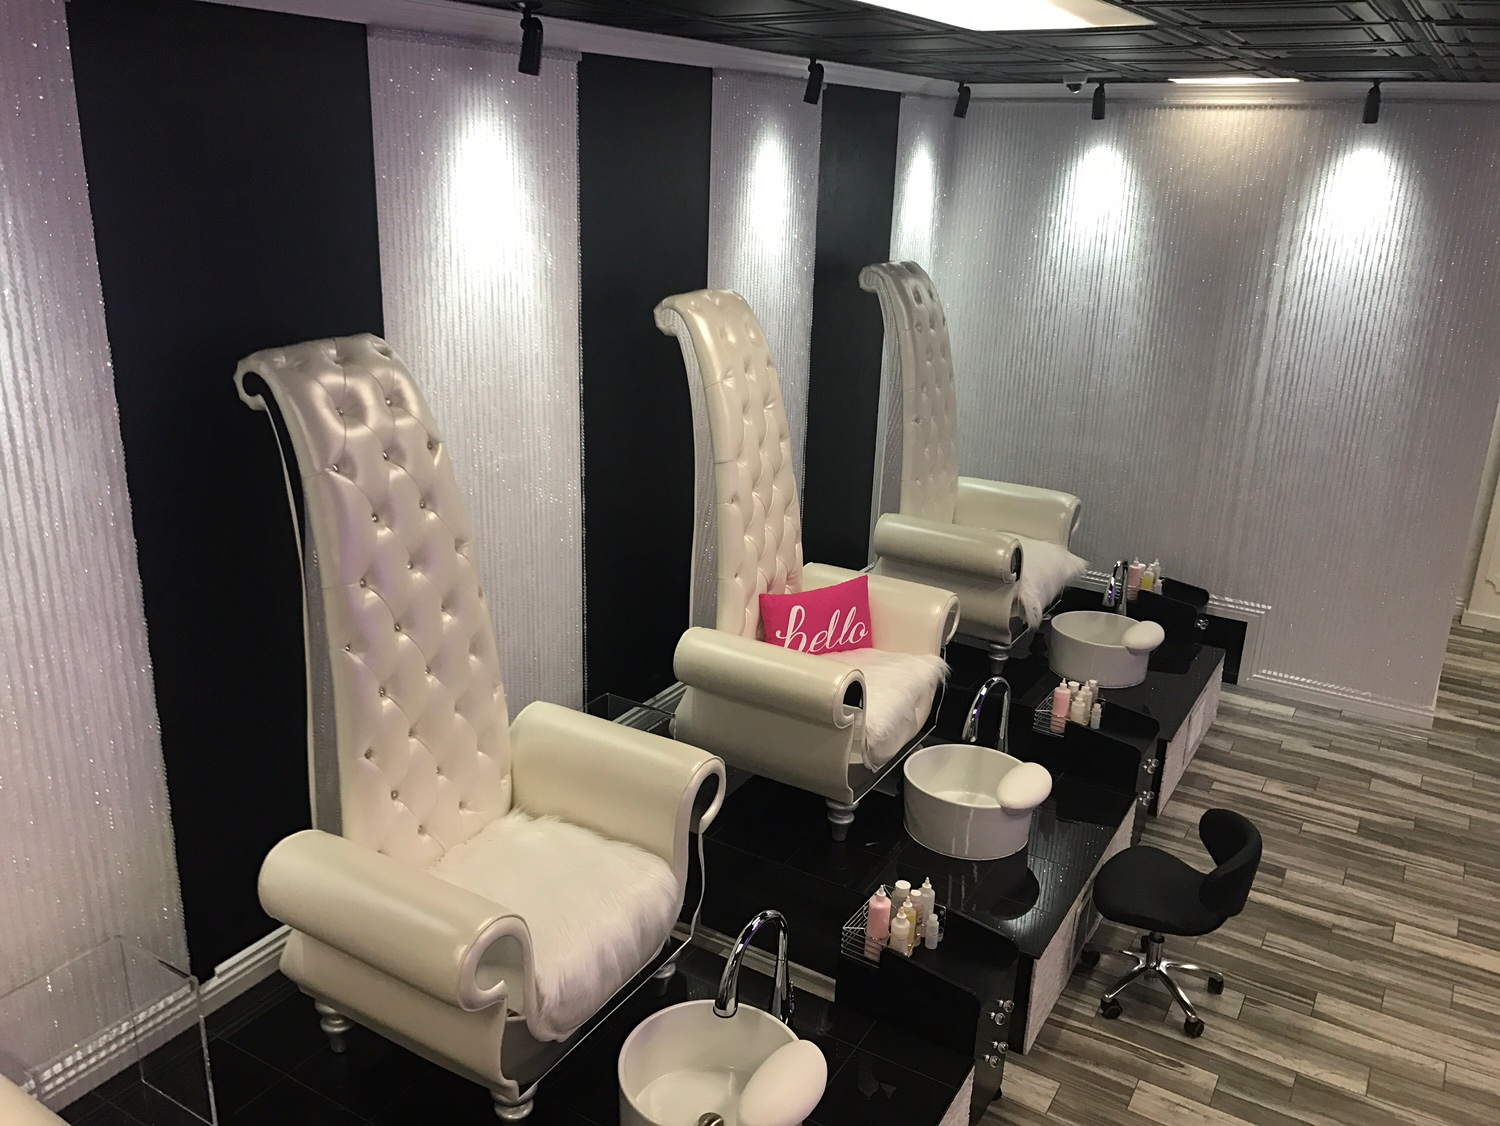 LivLav Nail Bar Jamie Urner Interior Design